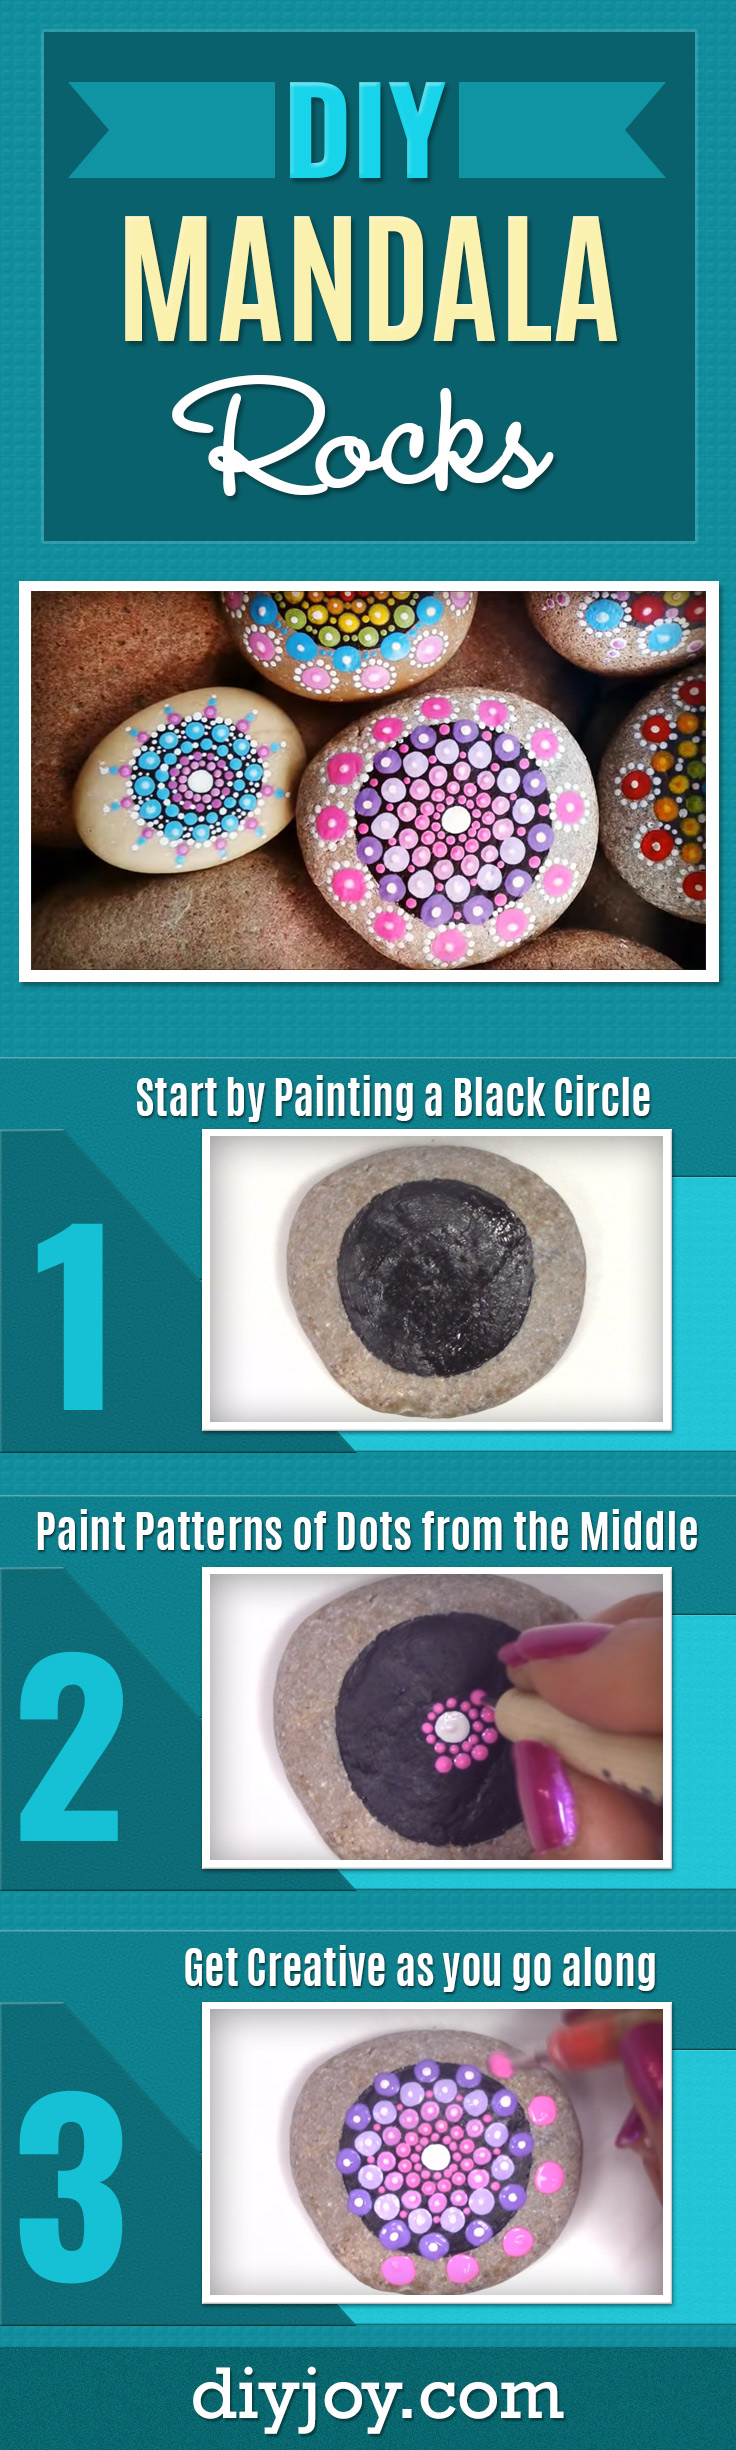 DIY Ideas With Rocks - Cheap and Easy Crafts Idea - How To Make a Mandala Rock Painting - Best DIY Gifts for Christmas Presents